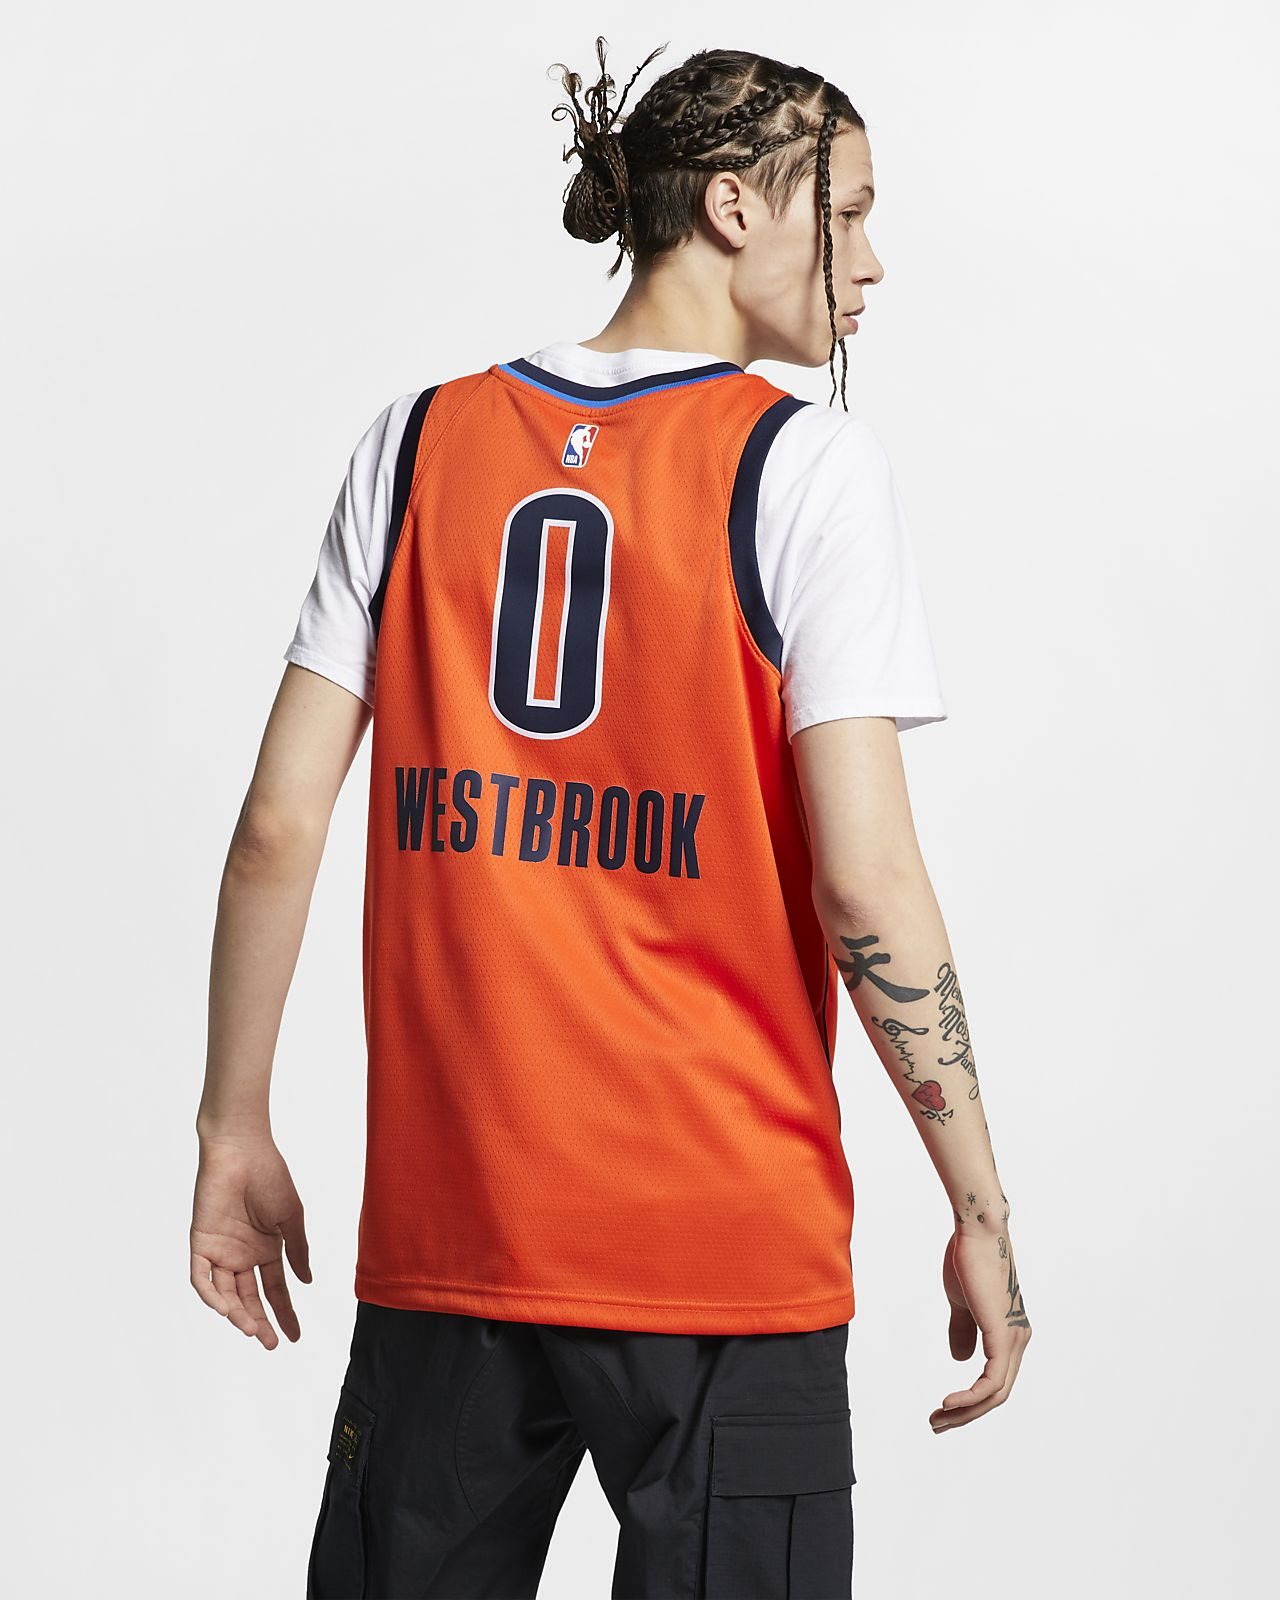 2dd389be9 purchase russell westbrook mens. purchase russell. Mens Oklahoma City  Thunder Russell